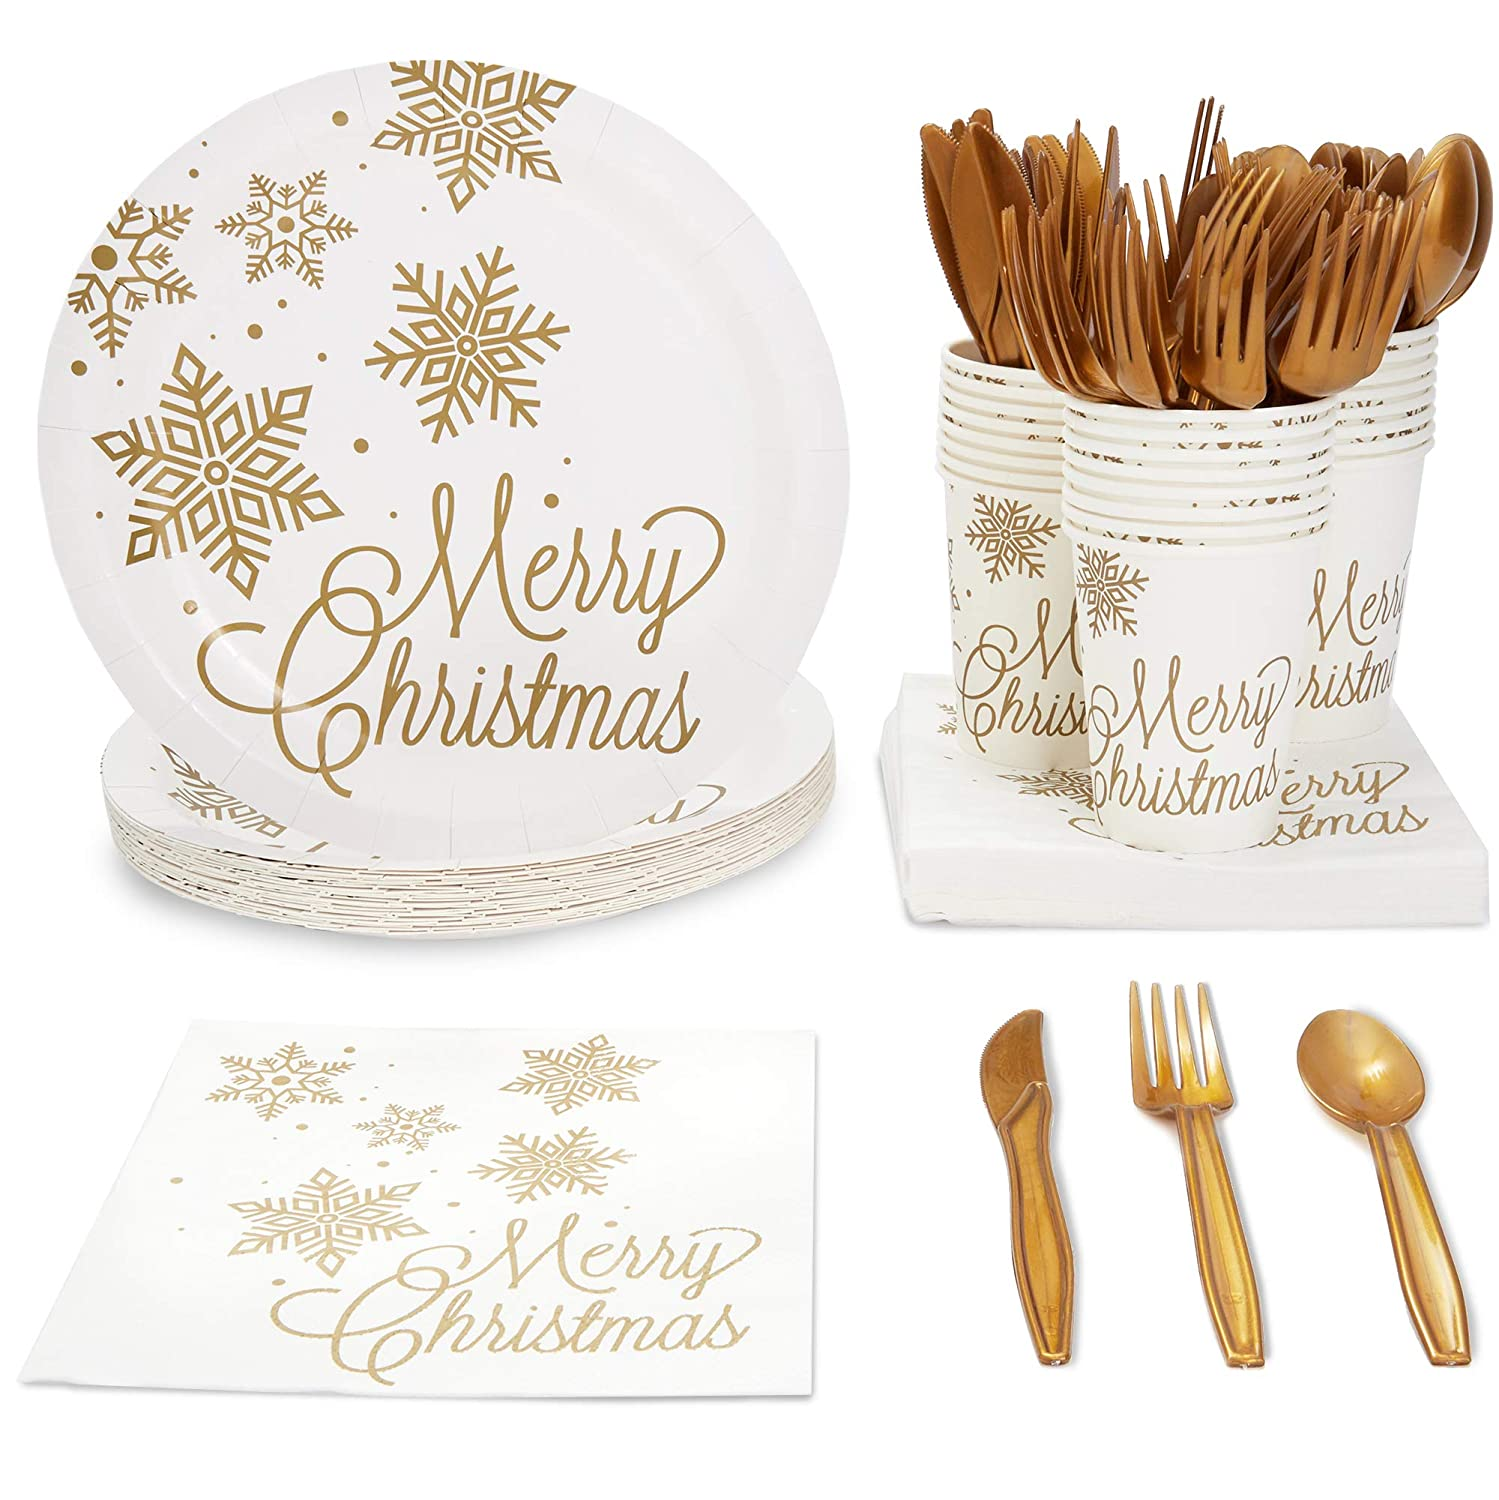 Juvale Christmas Party Supplies  Serves 24   Plates  Napkins  Cups  Cutlery - Gold Snowflakes